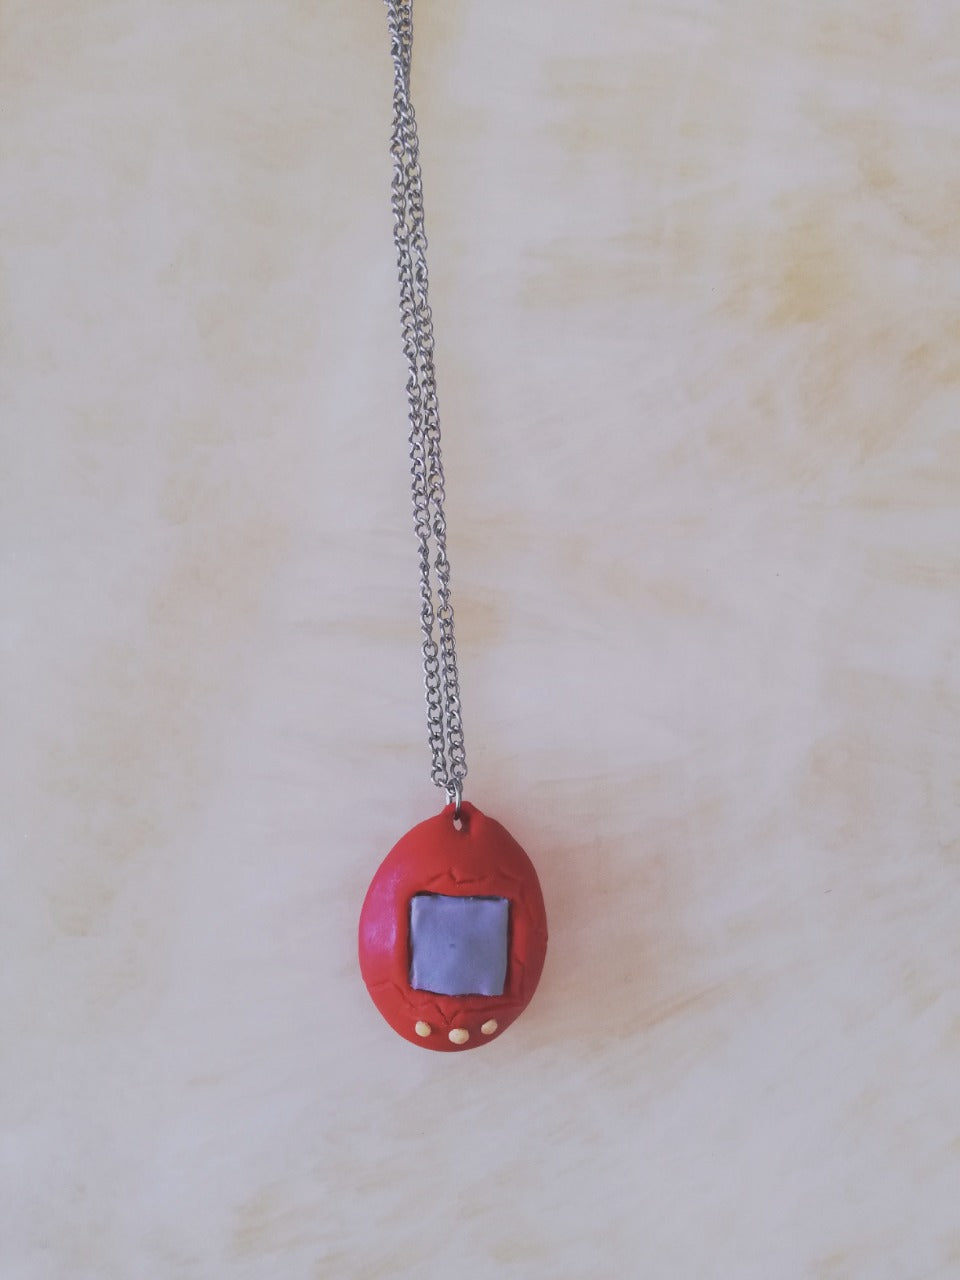 Tamagotchi Necklace